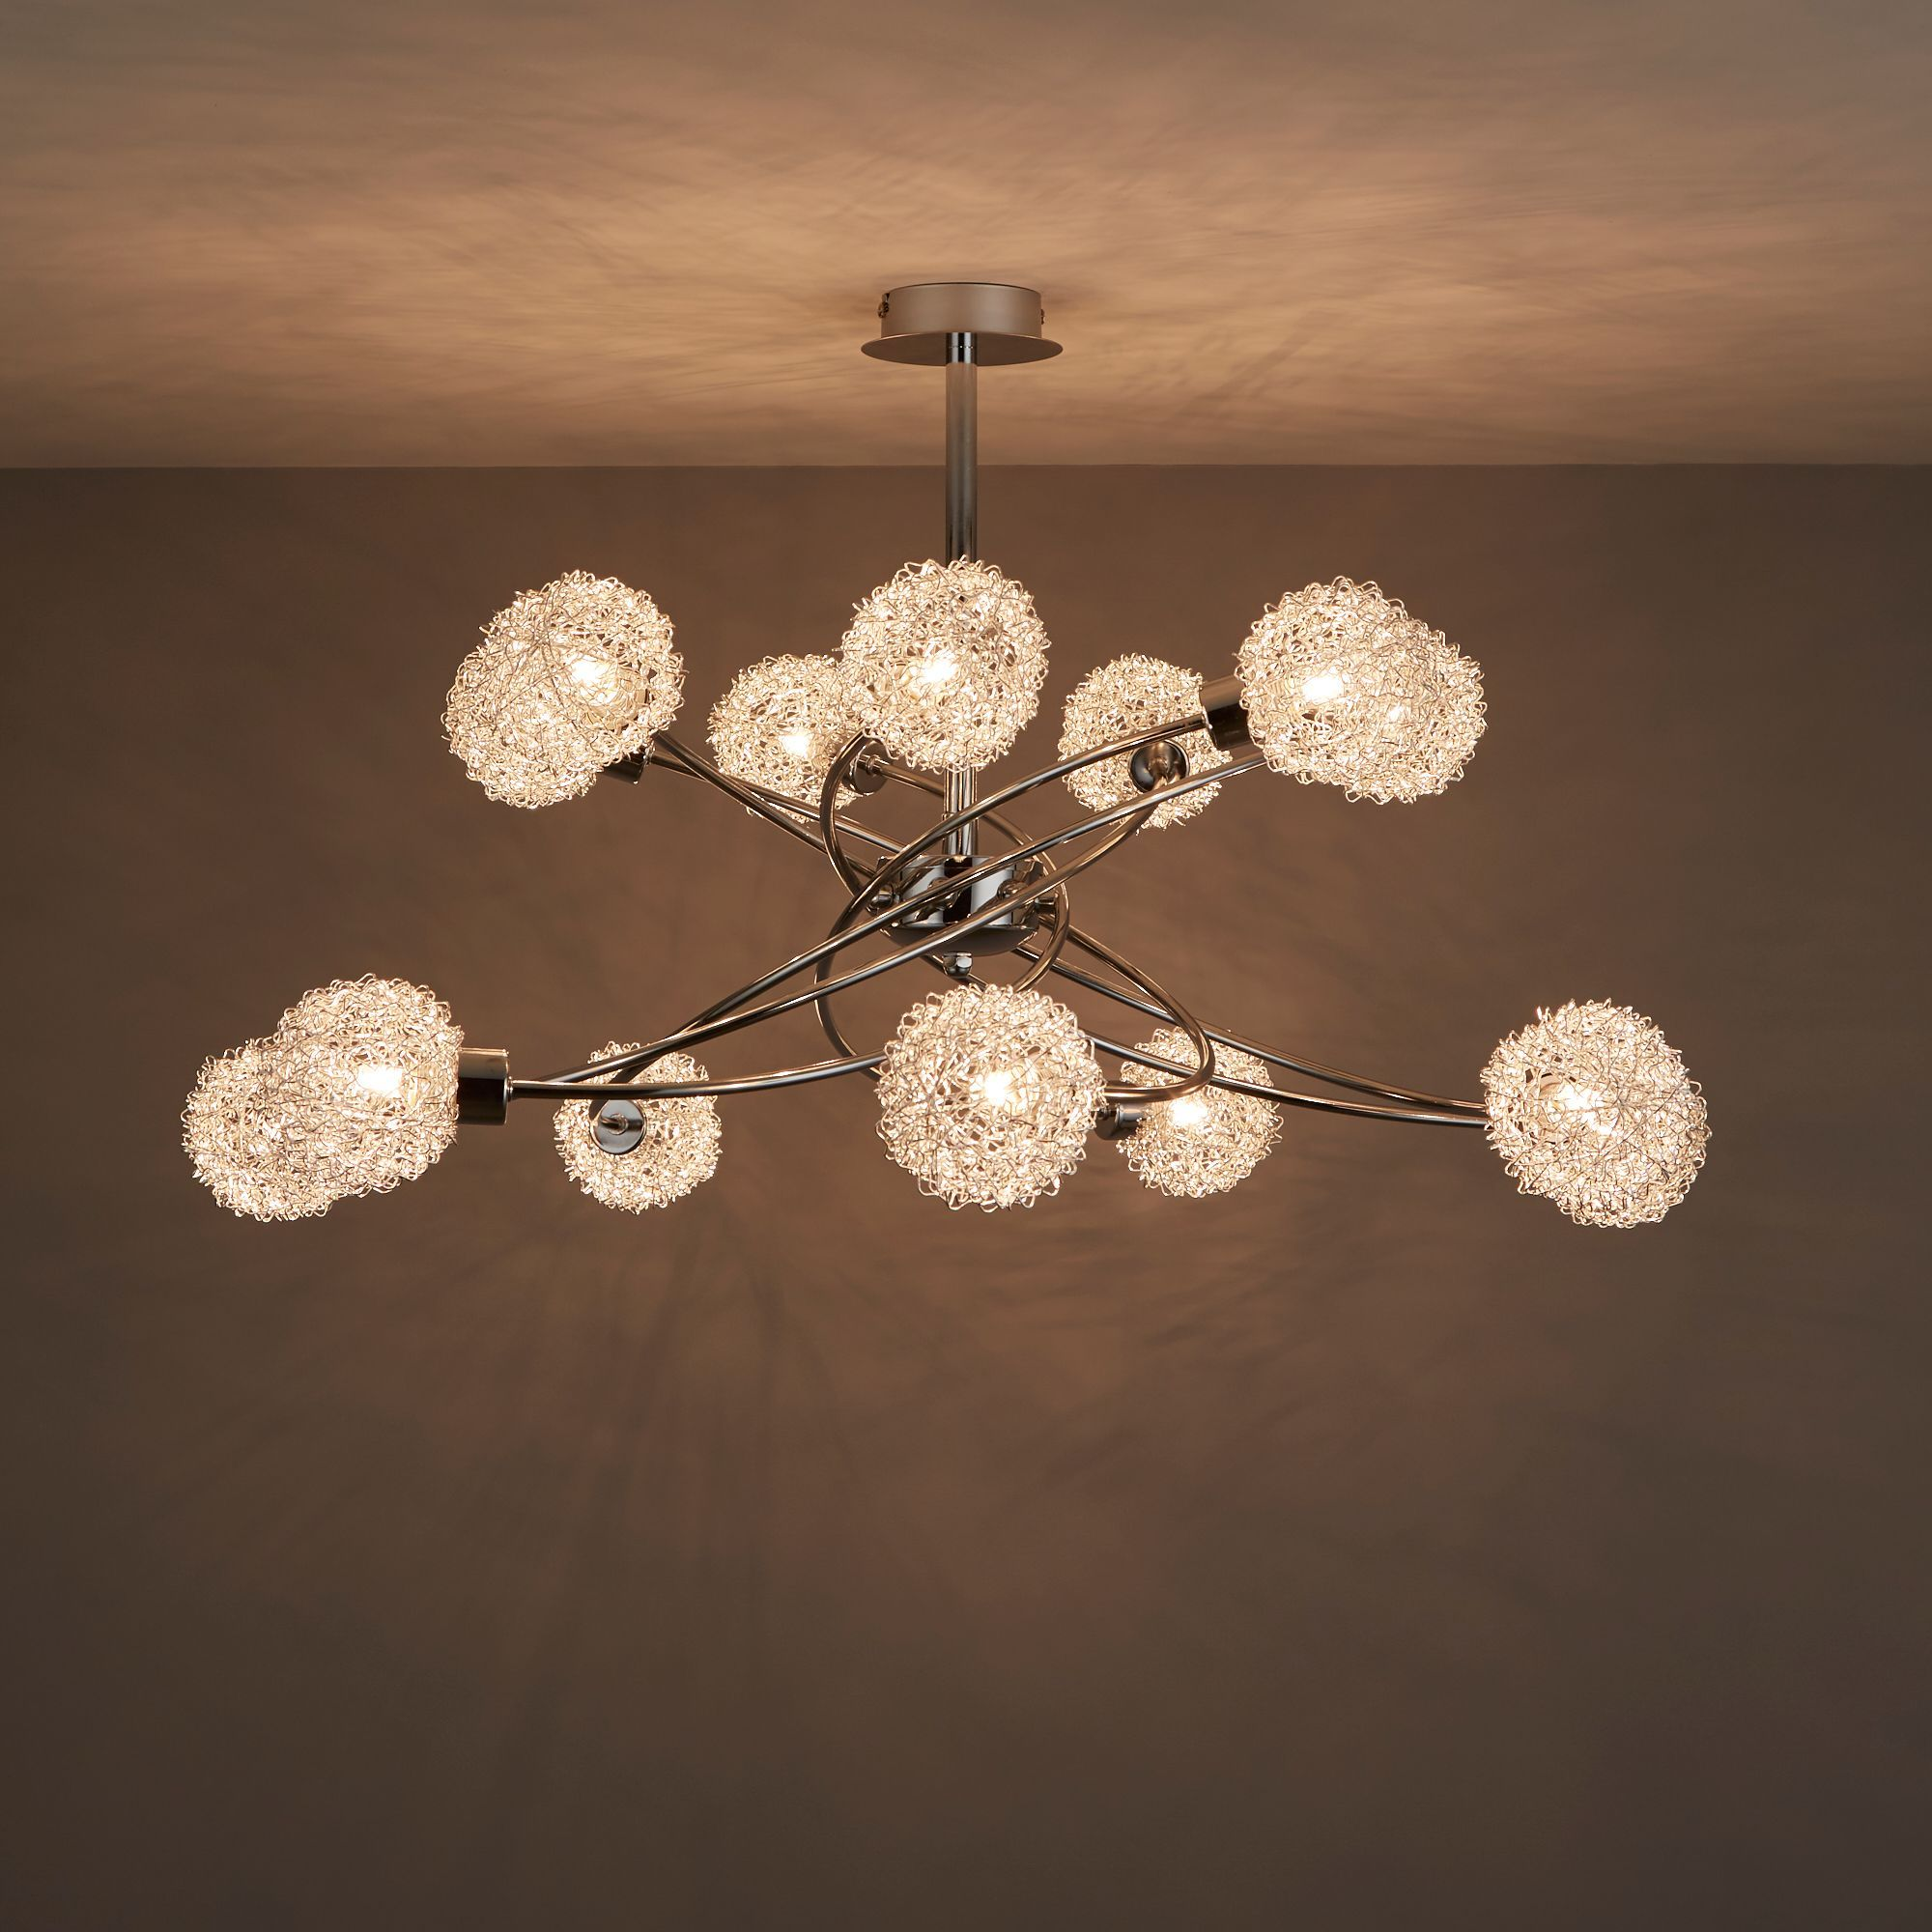 Caelus Chrome Effect 14 Lamp Ceiling Light Bq For All Your Home